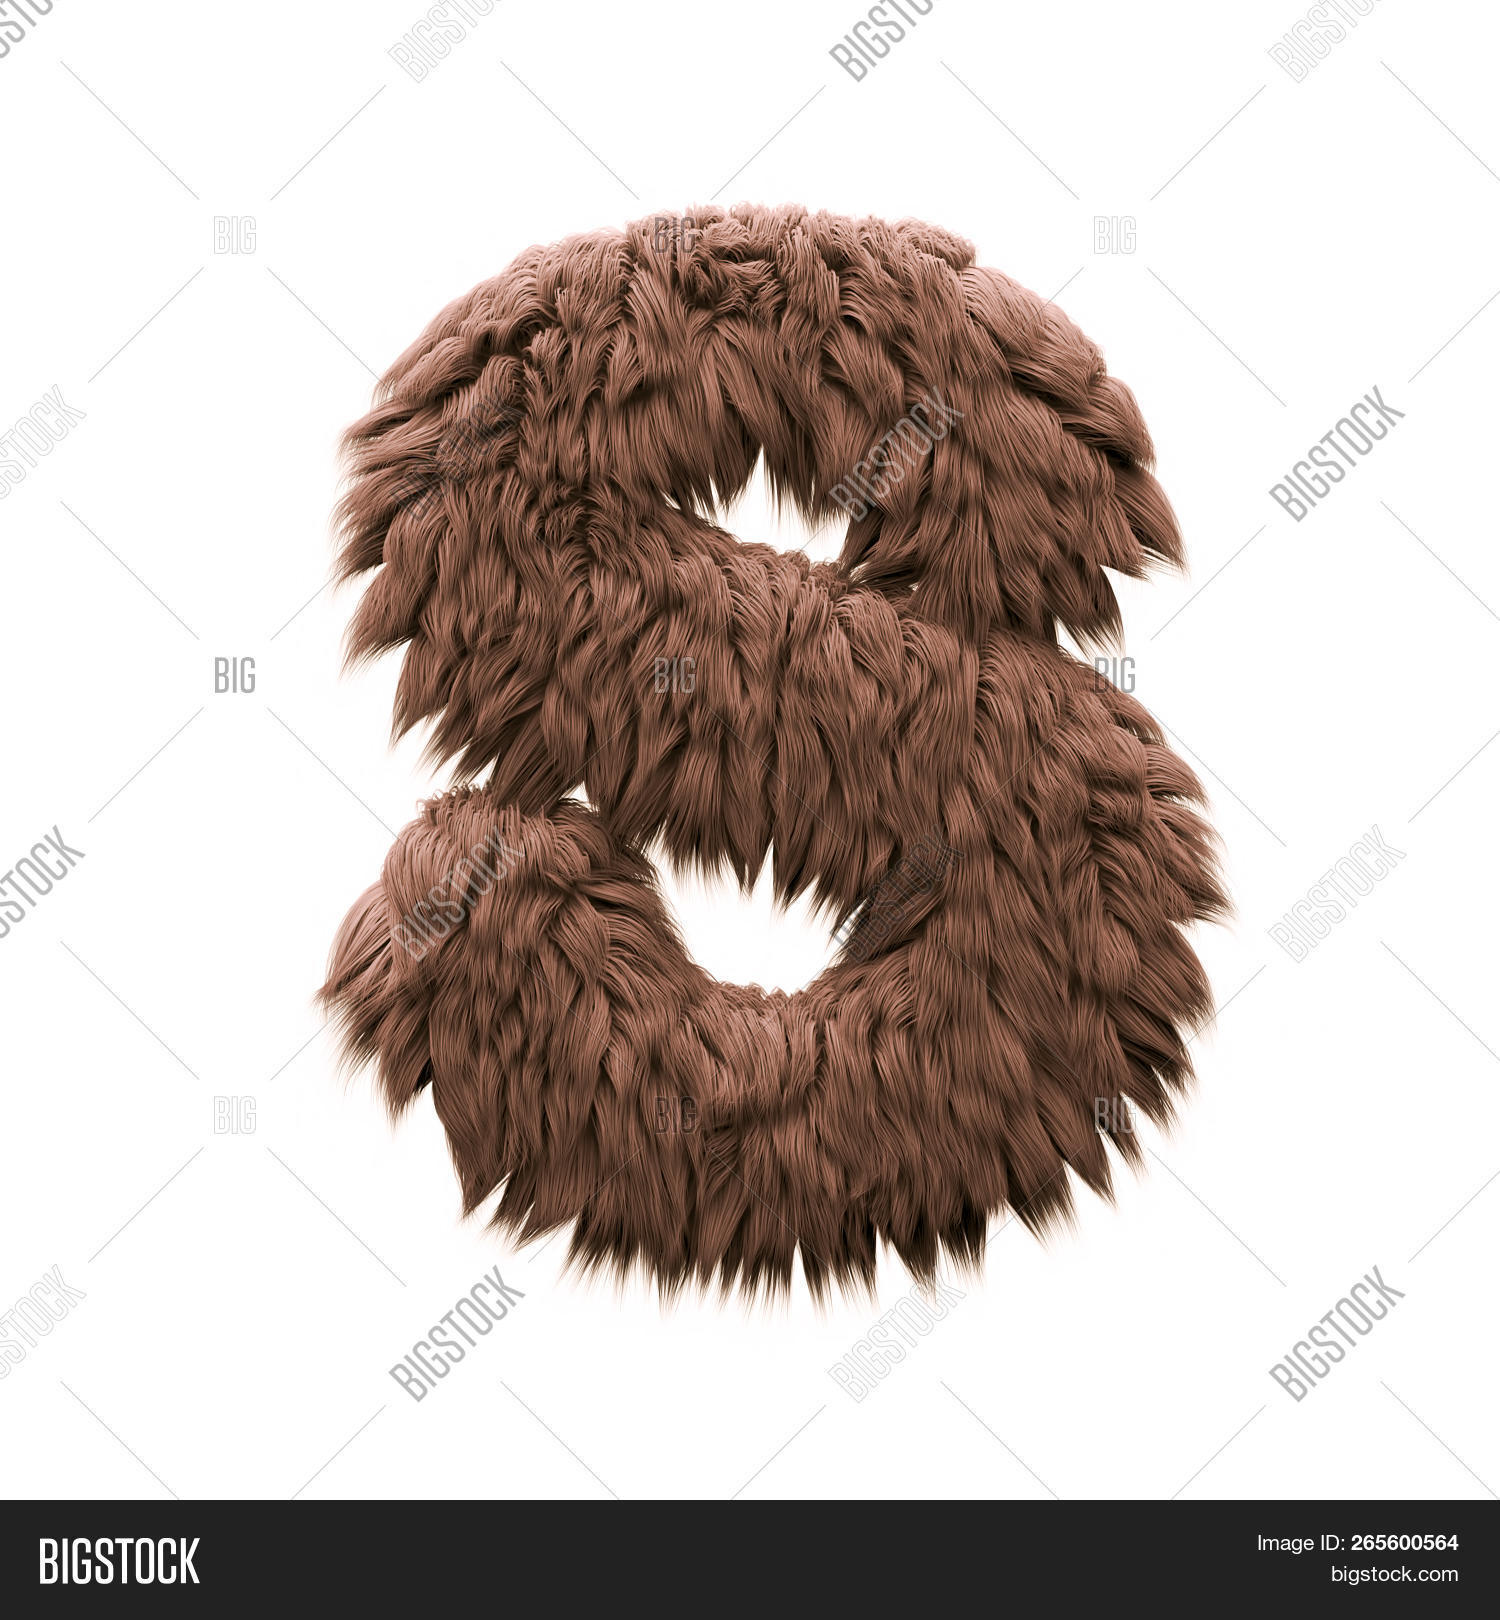 Monster Letter S  Image & Photo (Free Trial) | Bigstock